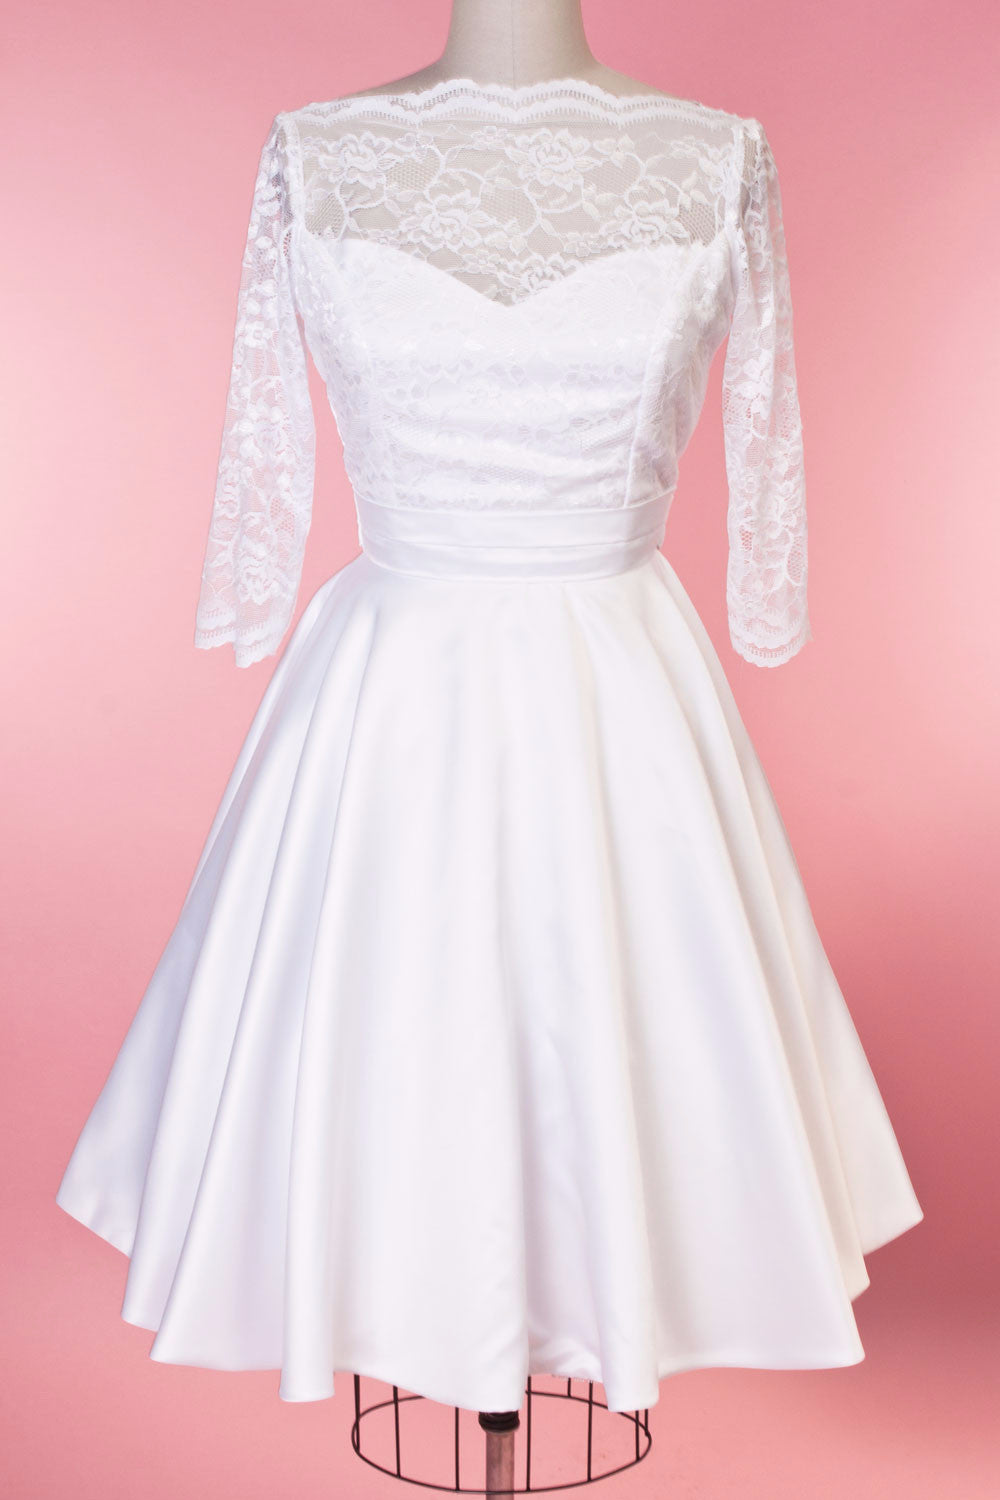 BP Collette Dress - White Lace - Heart of Haute  - 3